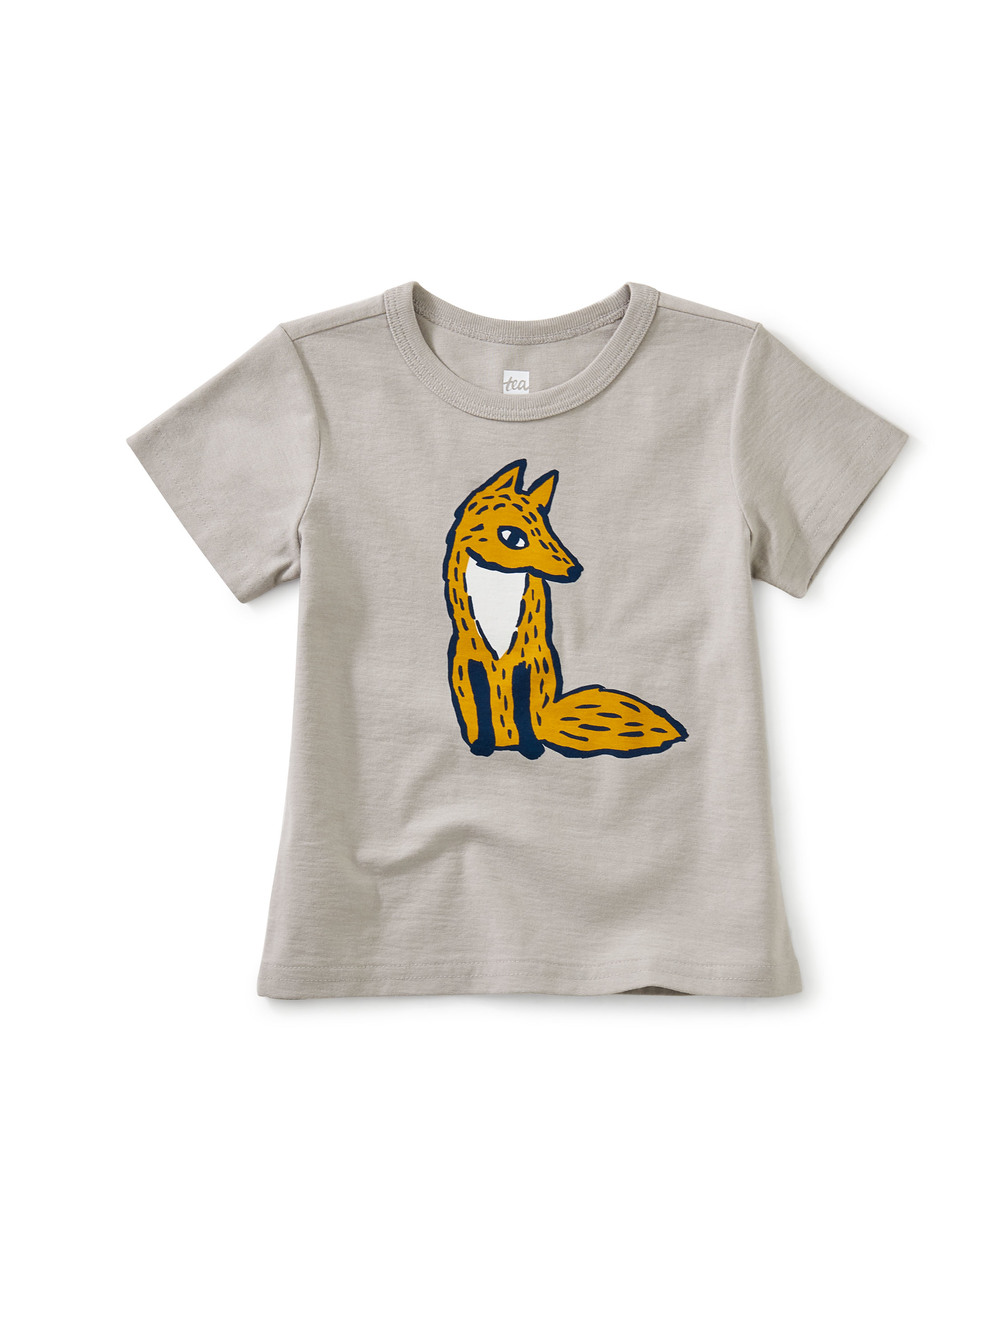 Sly Fox Graphic Tee